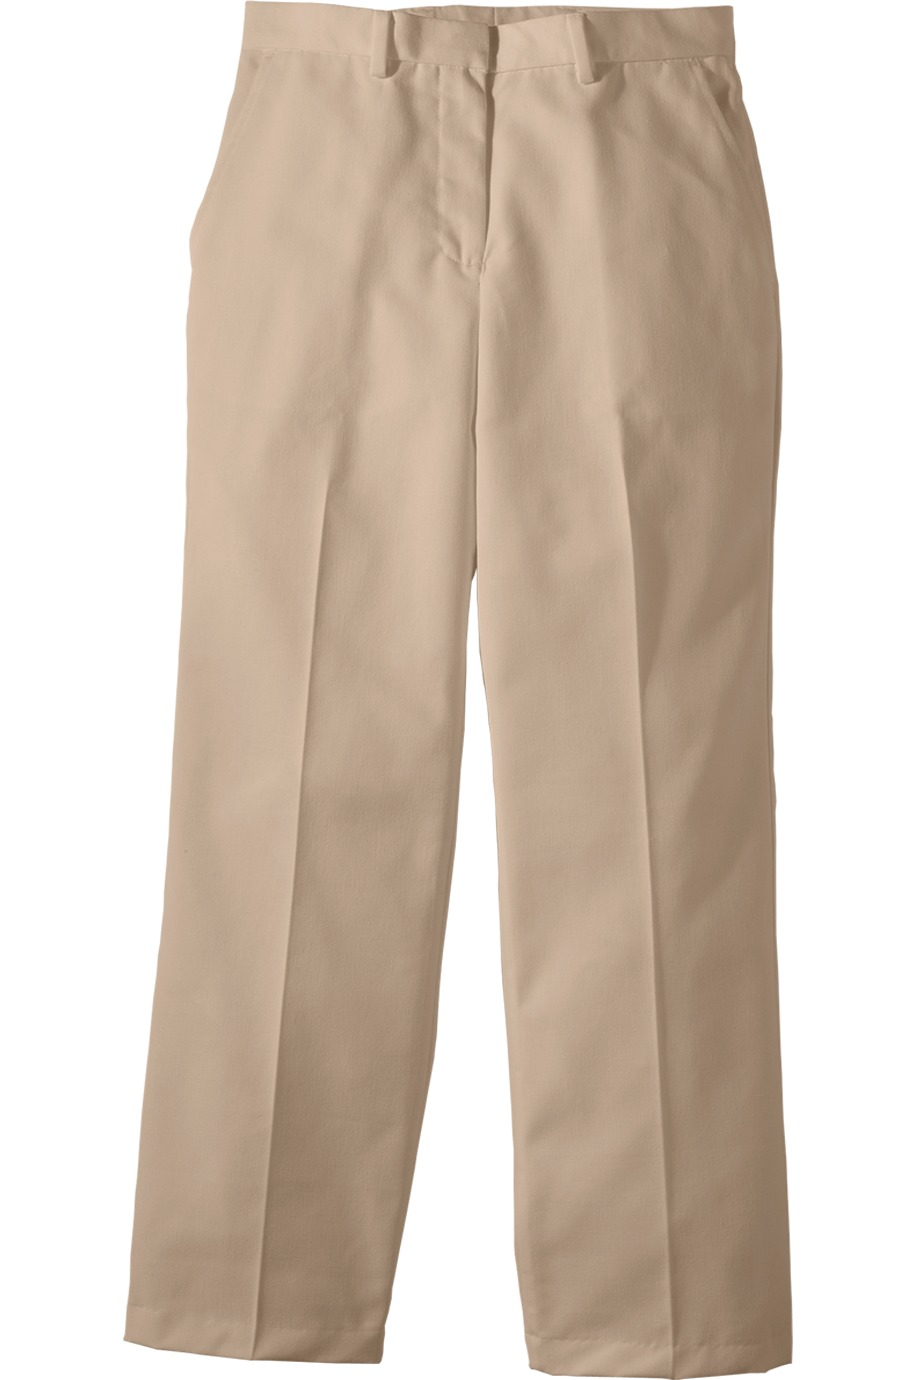 Edwards Garment 8519 - Women's Business Casual Flat Front Pant